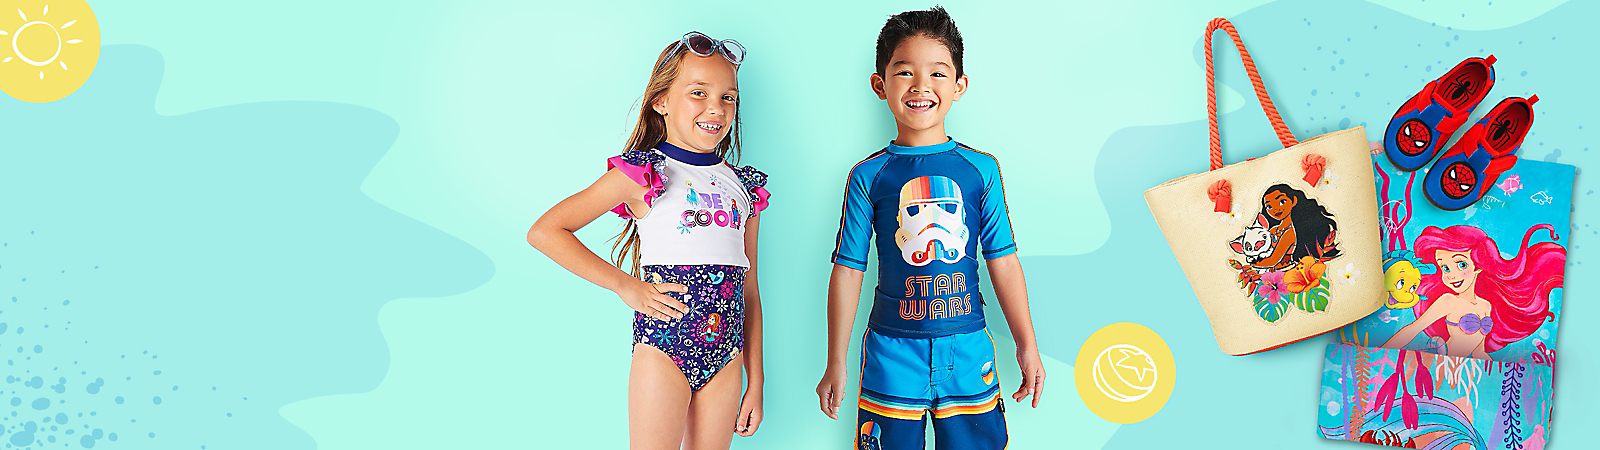 Boy in Star Wars Rashguard and Swim Shorts, Girl in Frozen Swimsuit Cover-Up, Swim Moana Tote Bag, Spider-Man Swim Shoes, Ariel from the Little Mermaid Towel